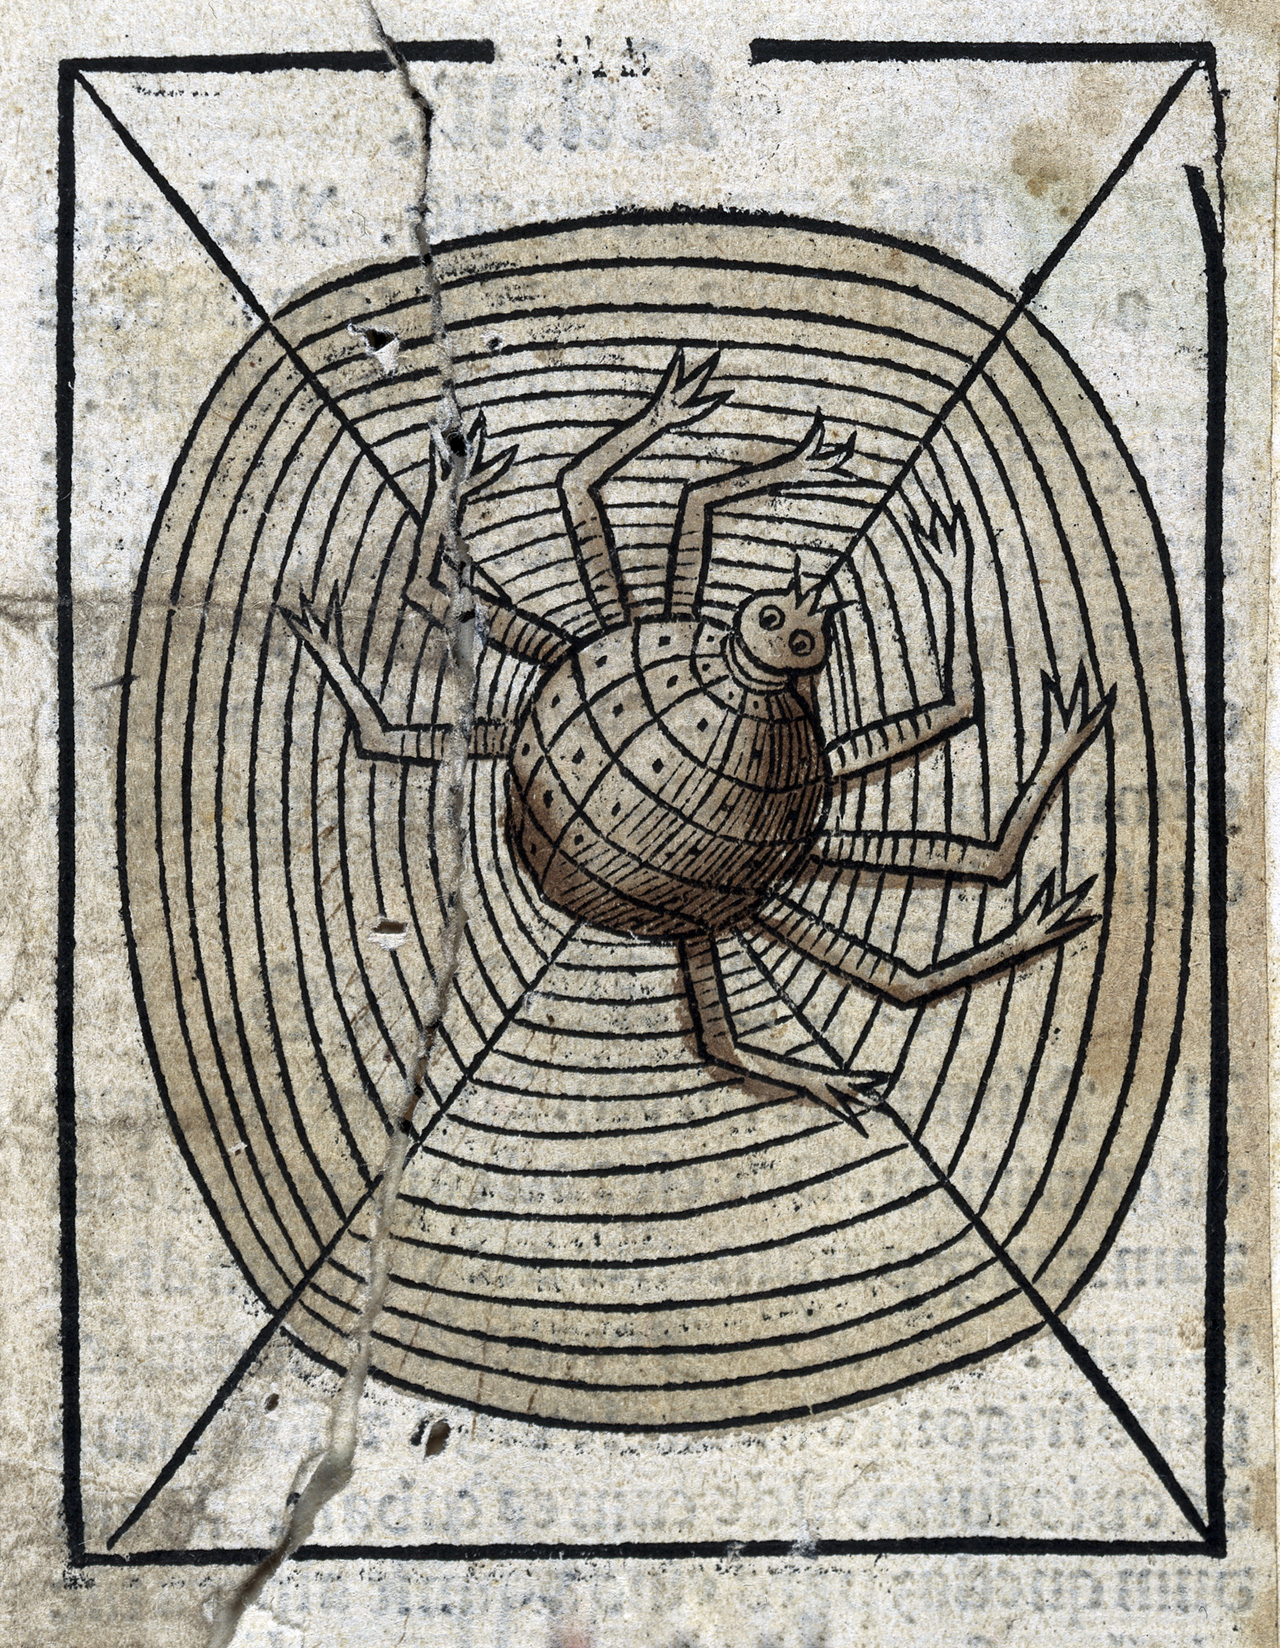 Anonymous, A spider on its web, 1547. London, Wellcome Collection.